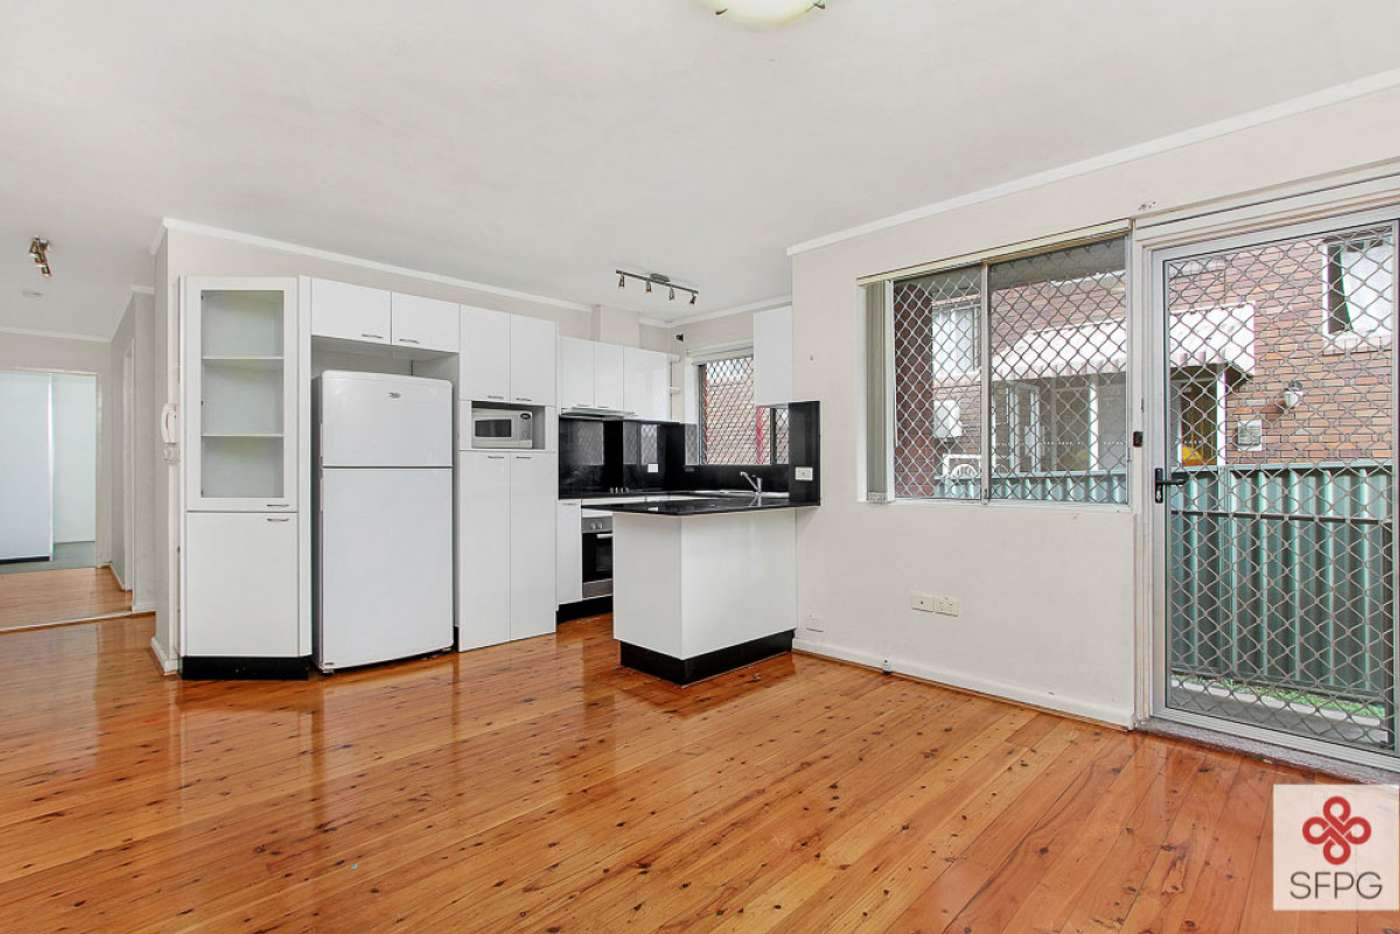 Main view of Homely apartment listing, 3/89 Great Western Highway, Parramatta NSW 2150